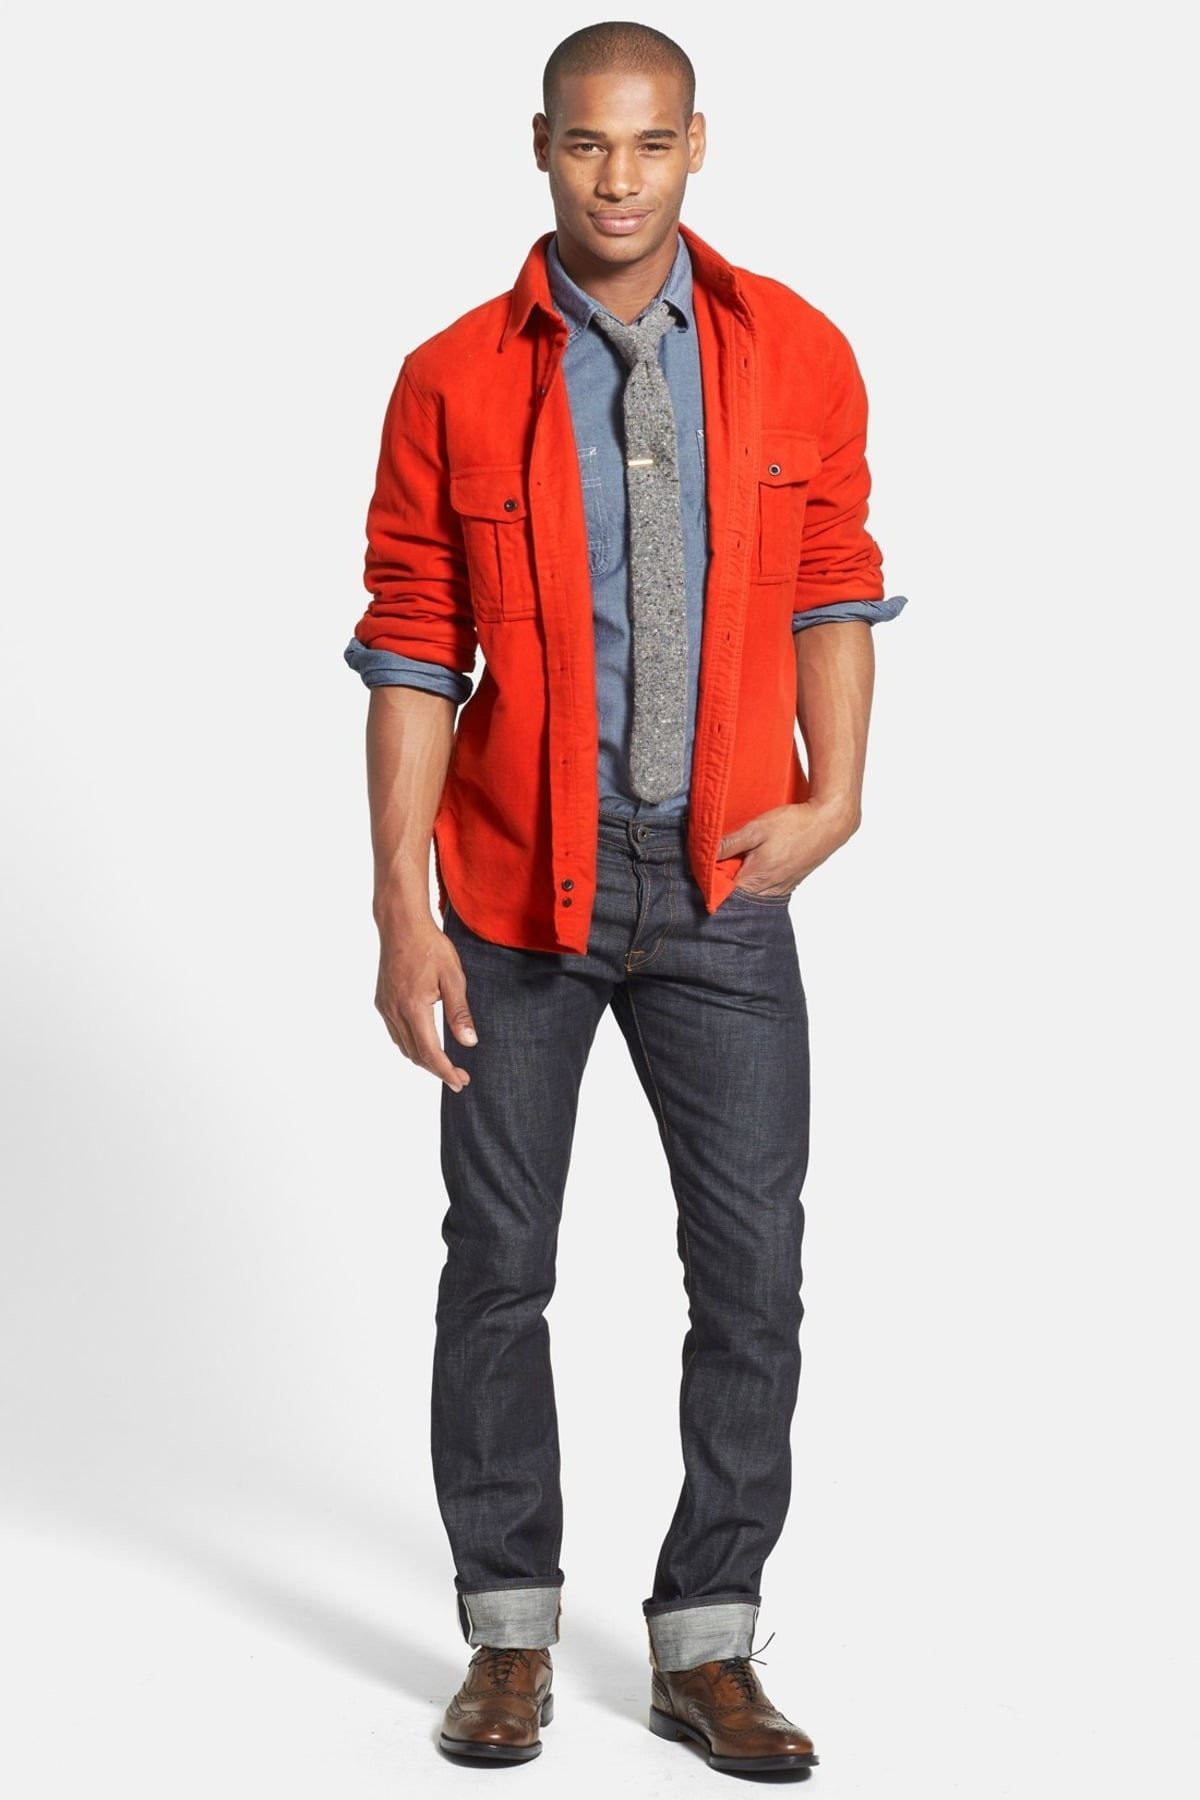 The Style Essentials You Need Men, trendy shirt, men's chambray shirt with orange shirt layered on top and jeans